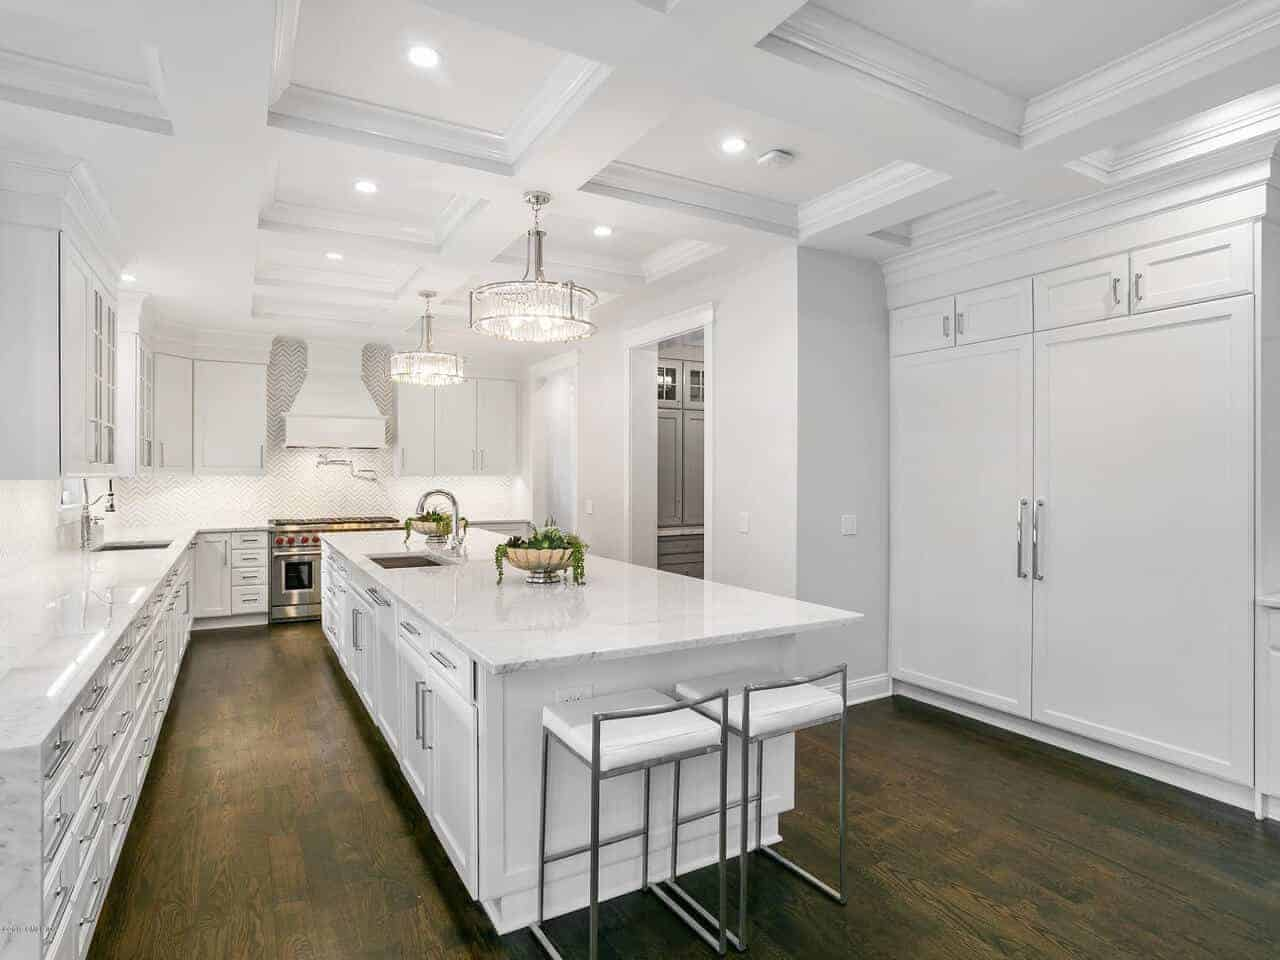 This is a predominantly white kitchen oozing with elegance in its white coffered ceiling, white kitchen island and peninsula with matching white shaker cabinets and drawers contrasted by the dark hardwood flooring.